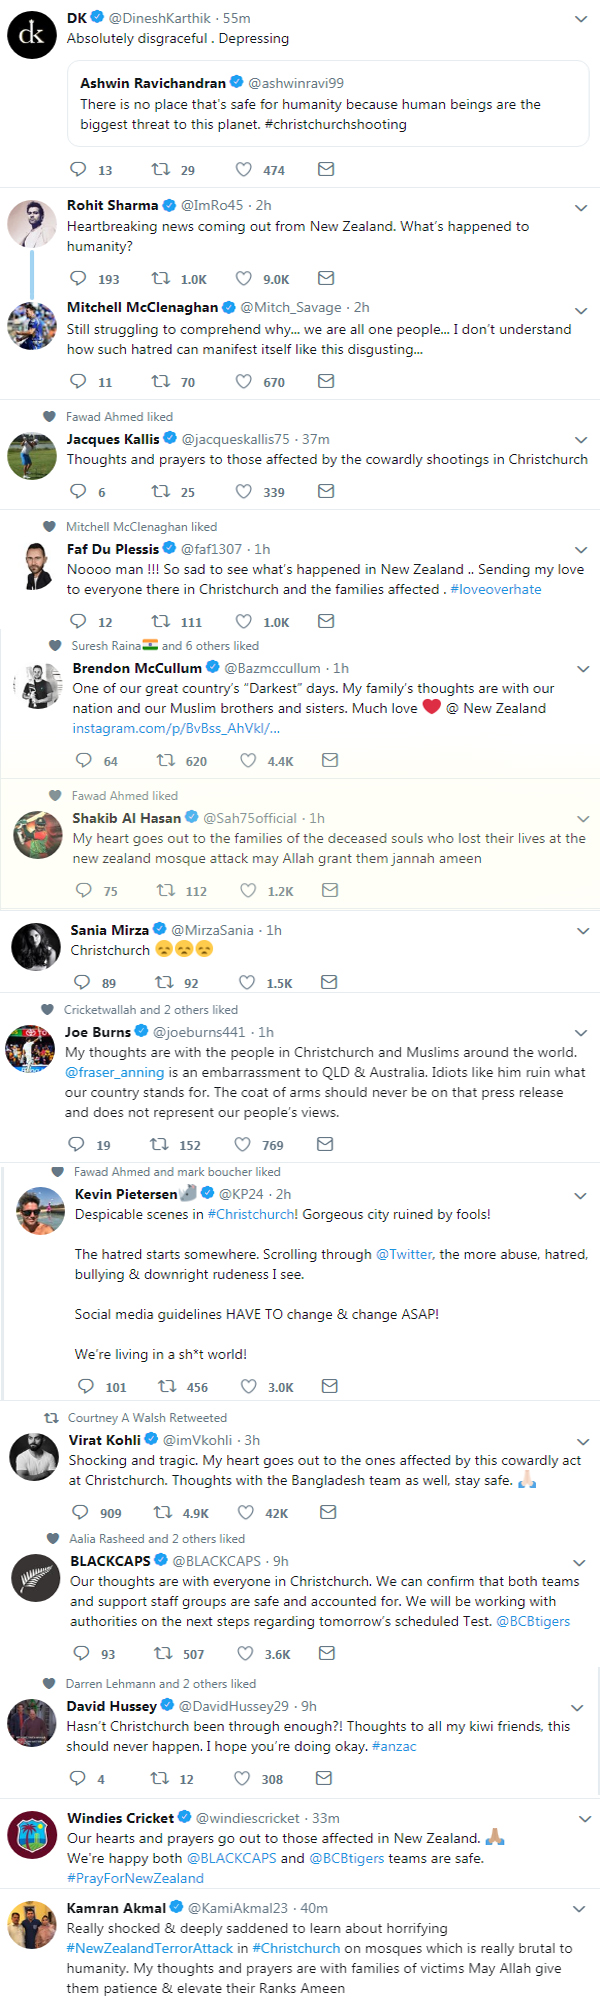 Christchurch attack : cricketers expressed their sadness, know who said